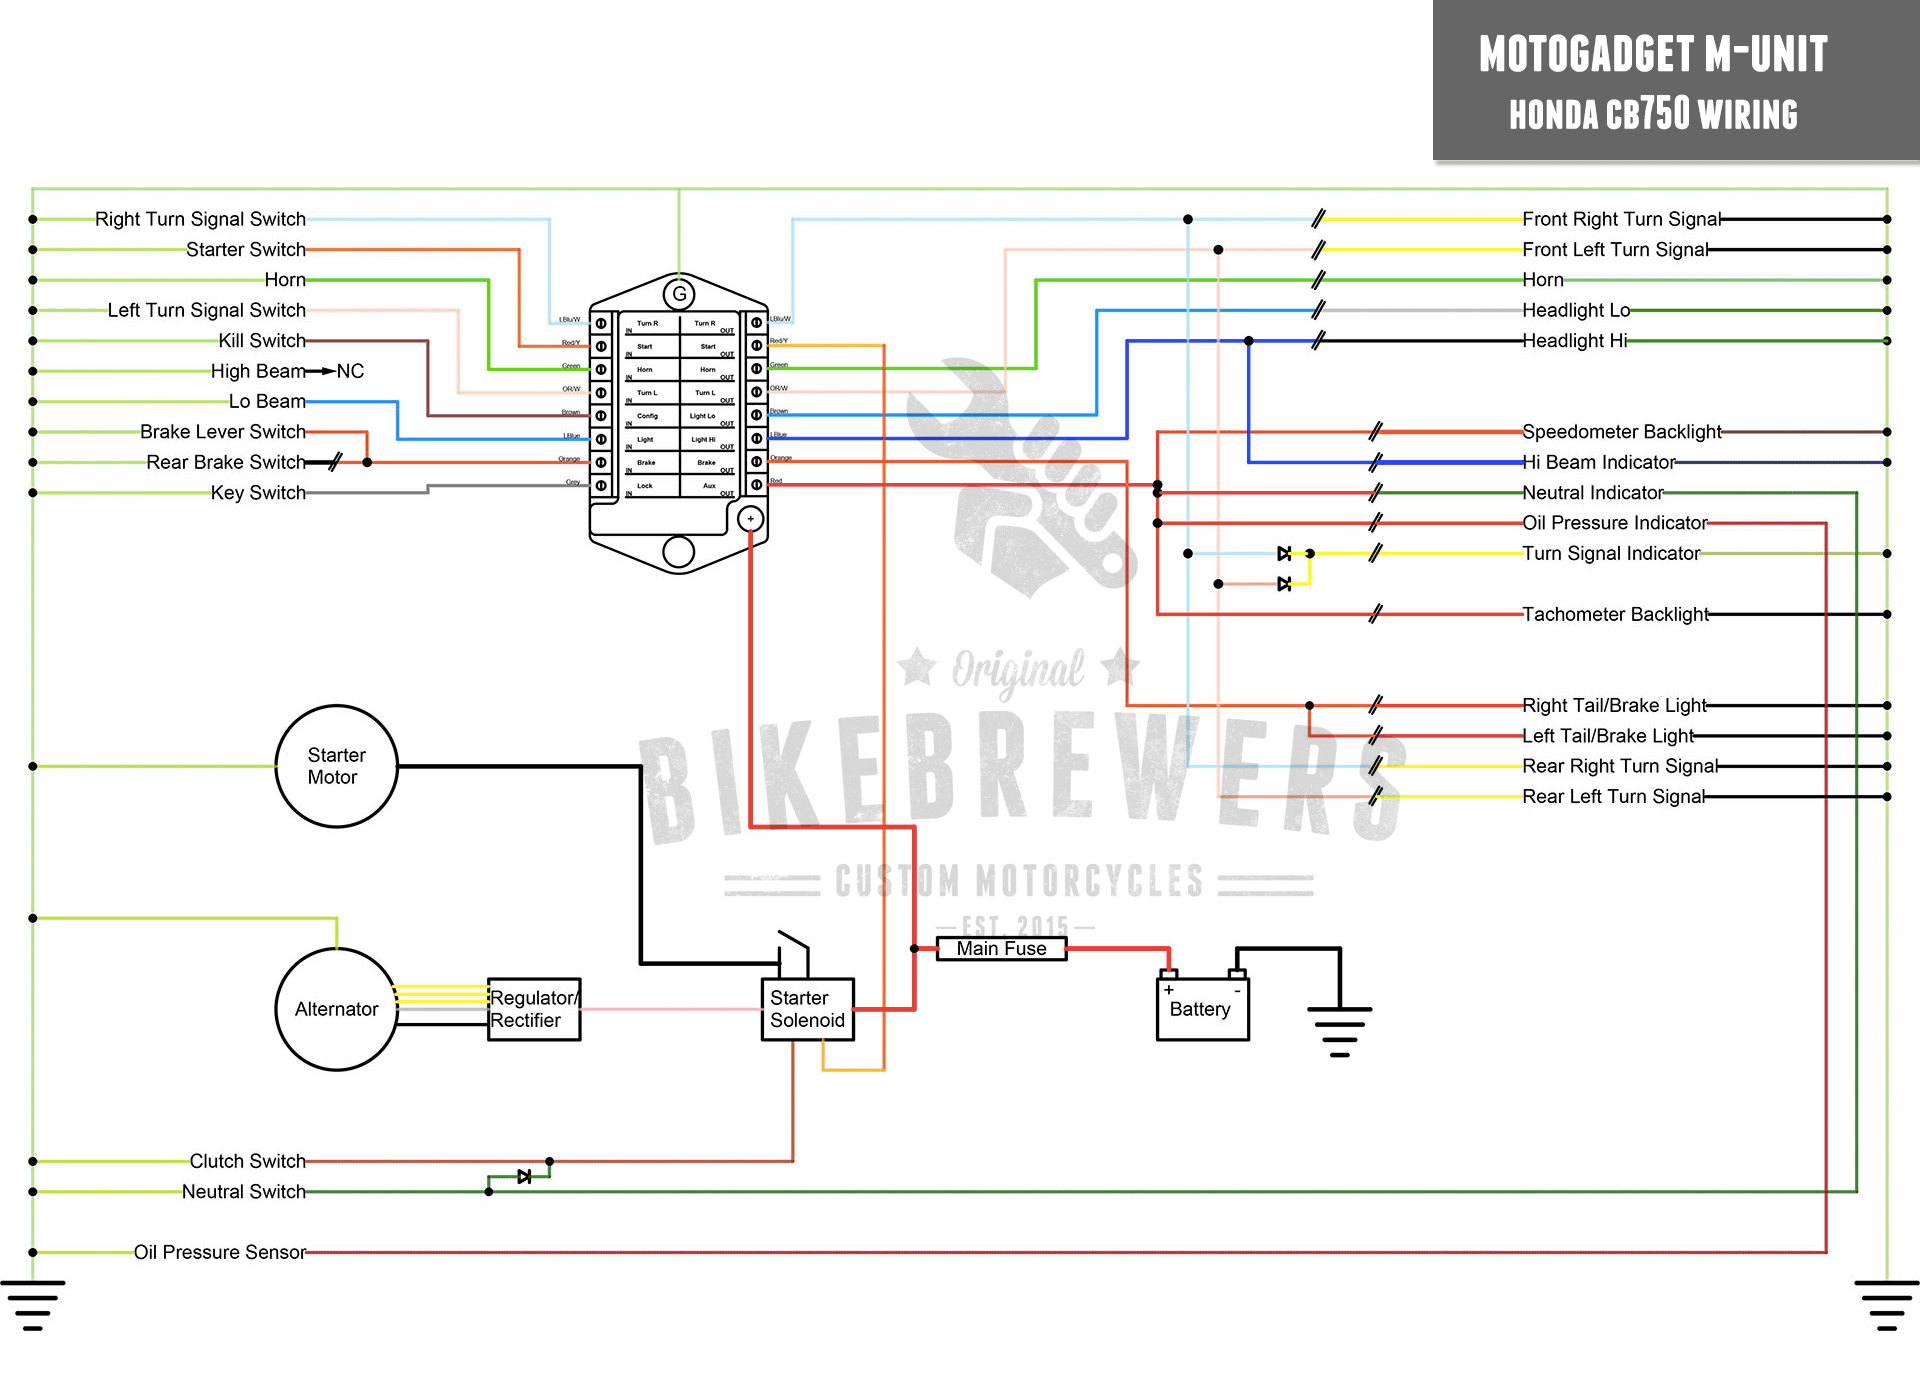 MotoGadget Wiring Honda CB750?resize\\\\\\\=665%2C485\\\\\\\&ssl\\\\\\\=1 k2 wiring diagram trailer wiring diagram \u2022 edmiracle co  at bayanpartner.co